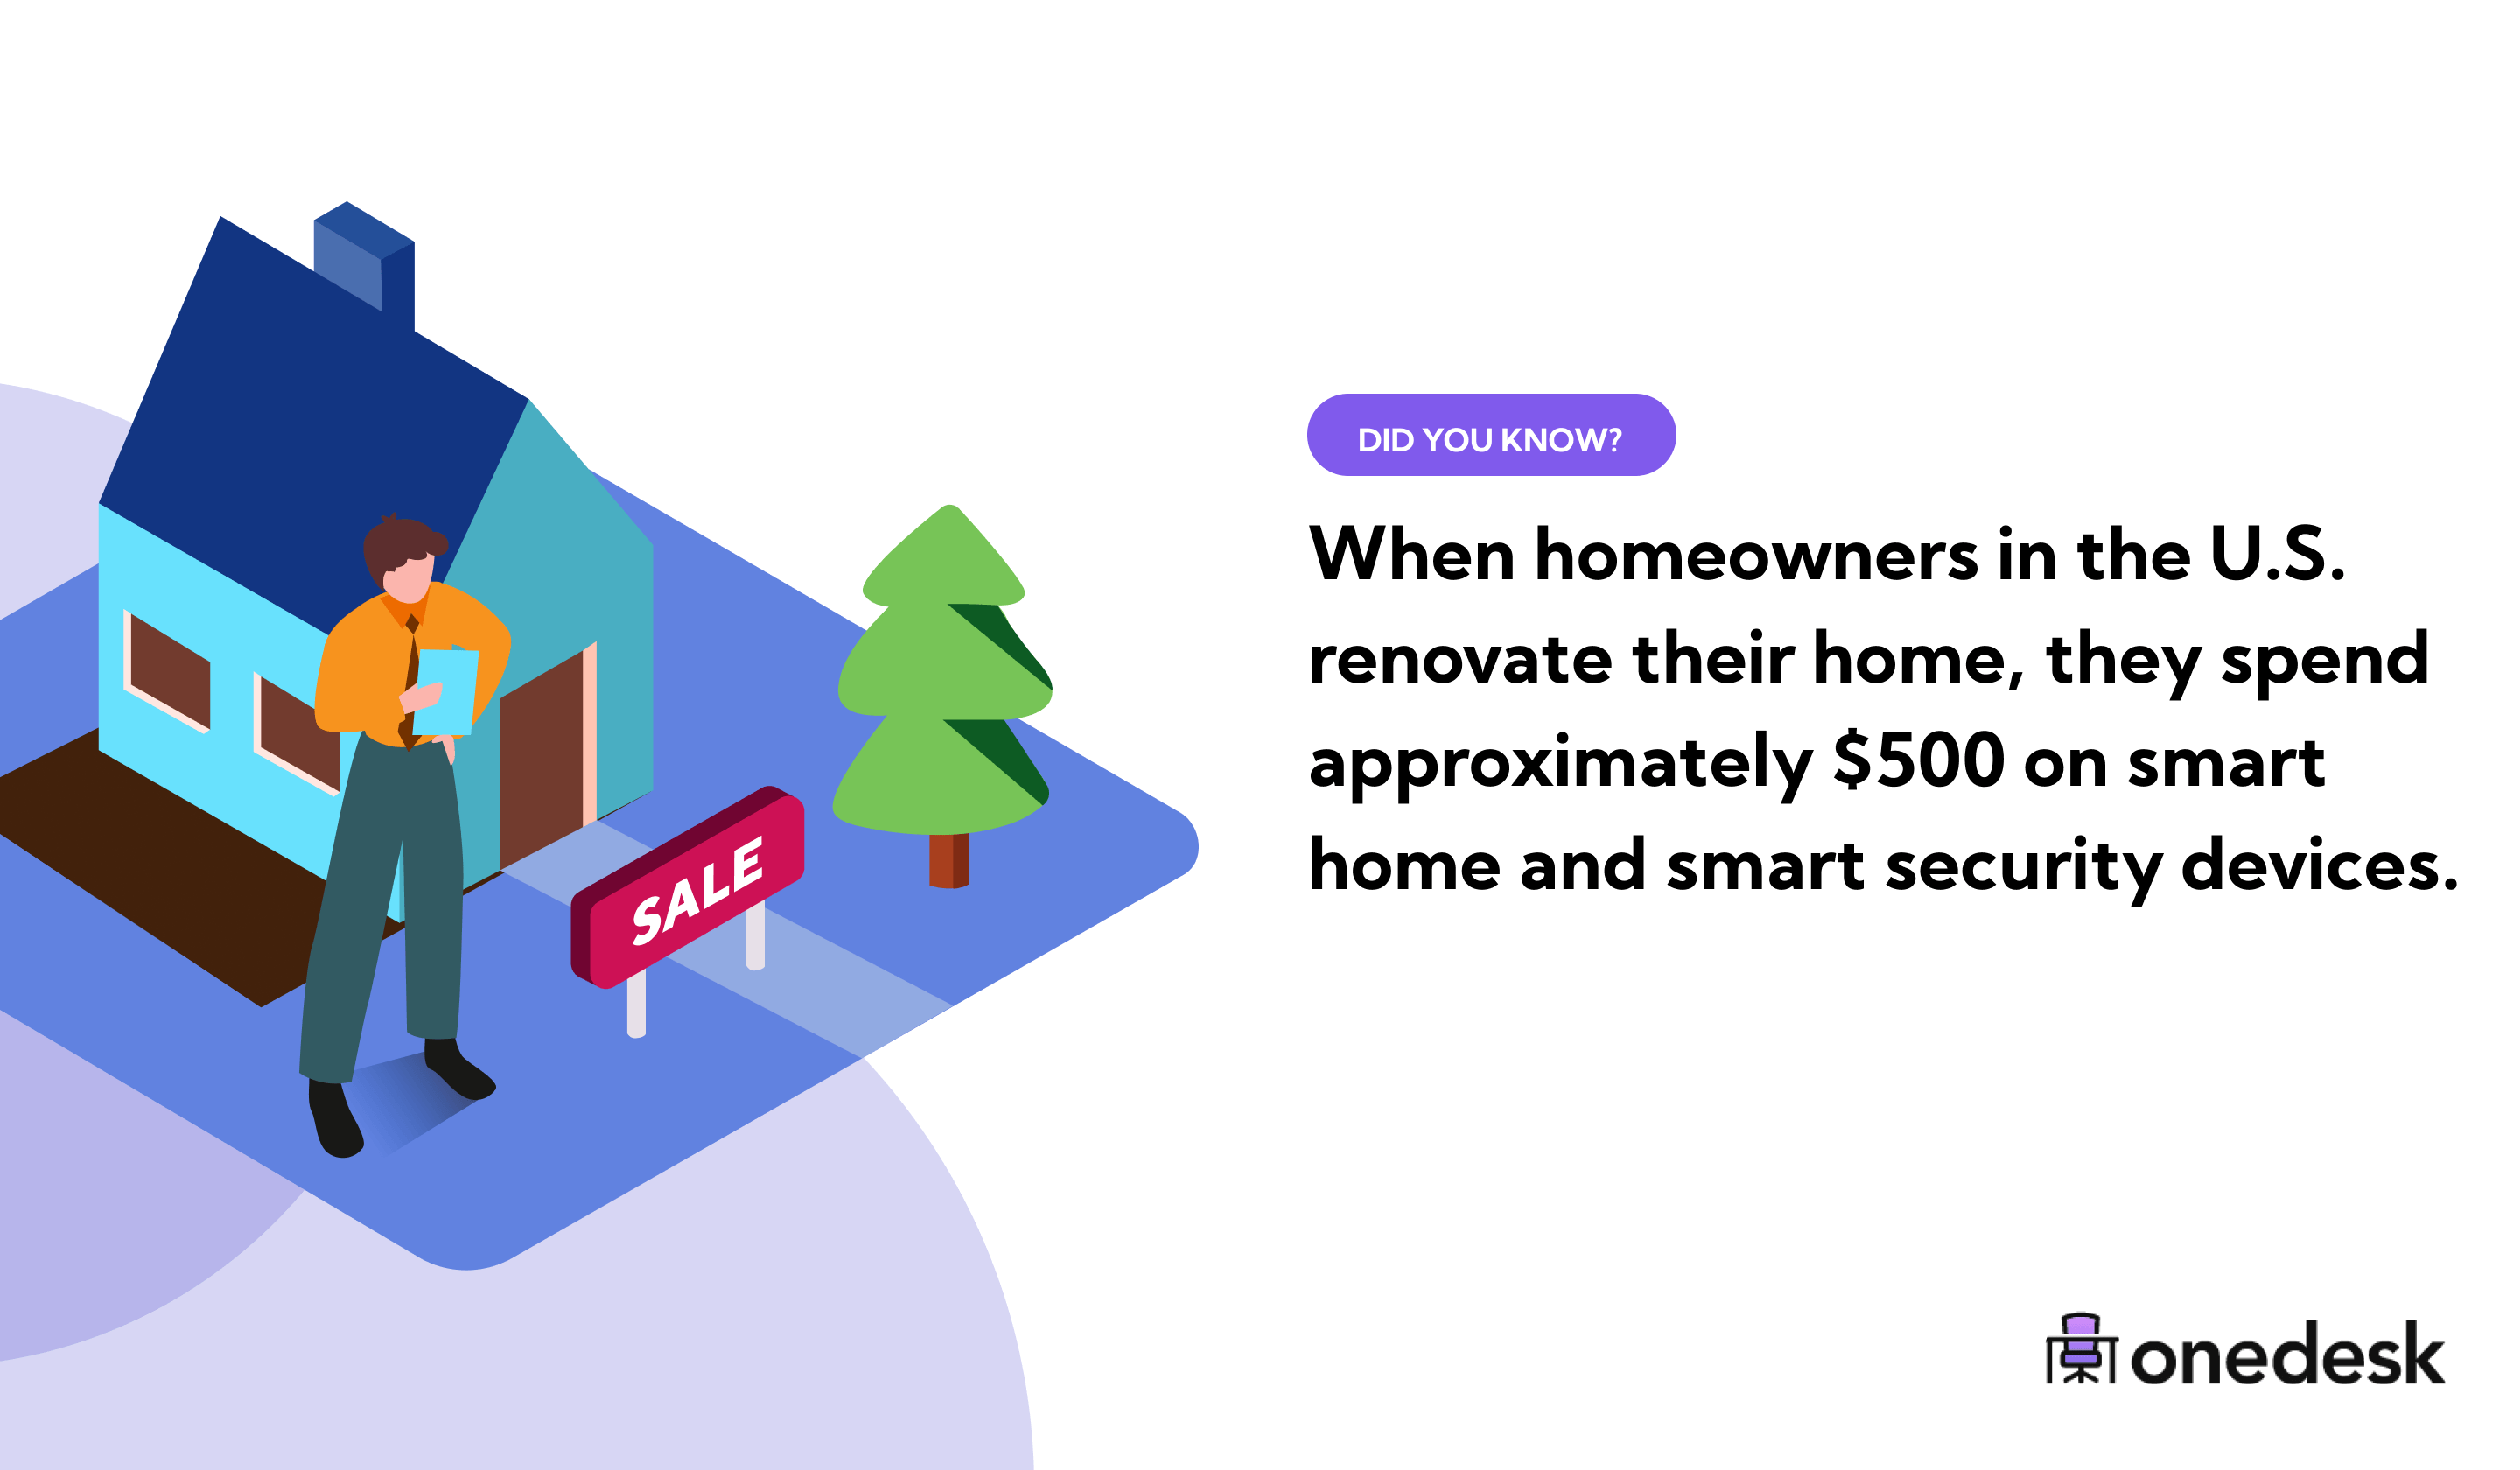 how much do homeowners spend on smart home devices